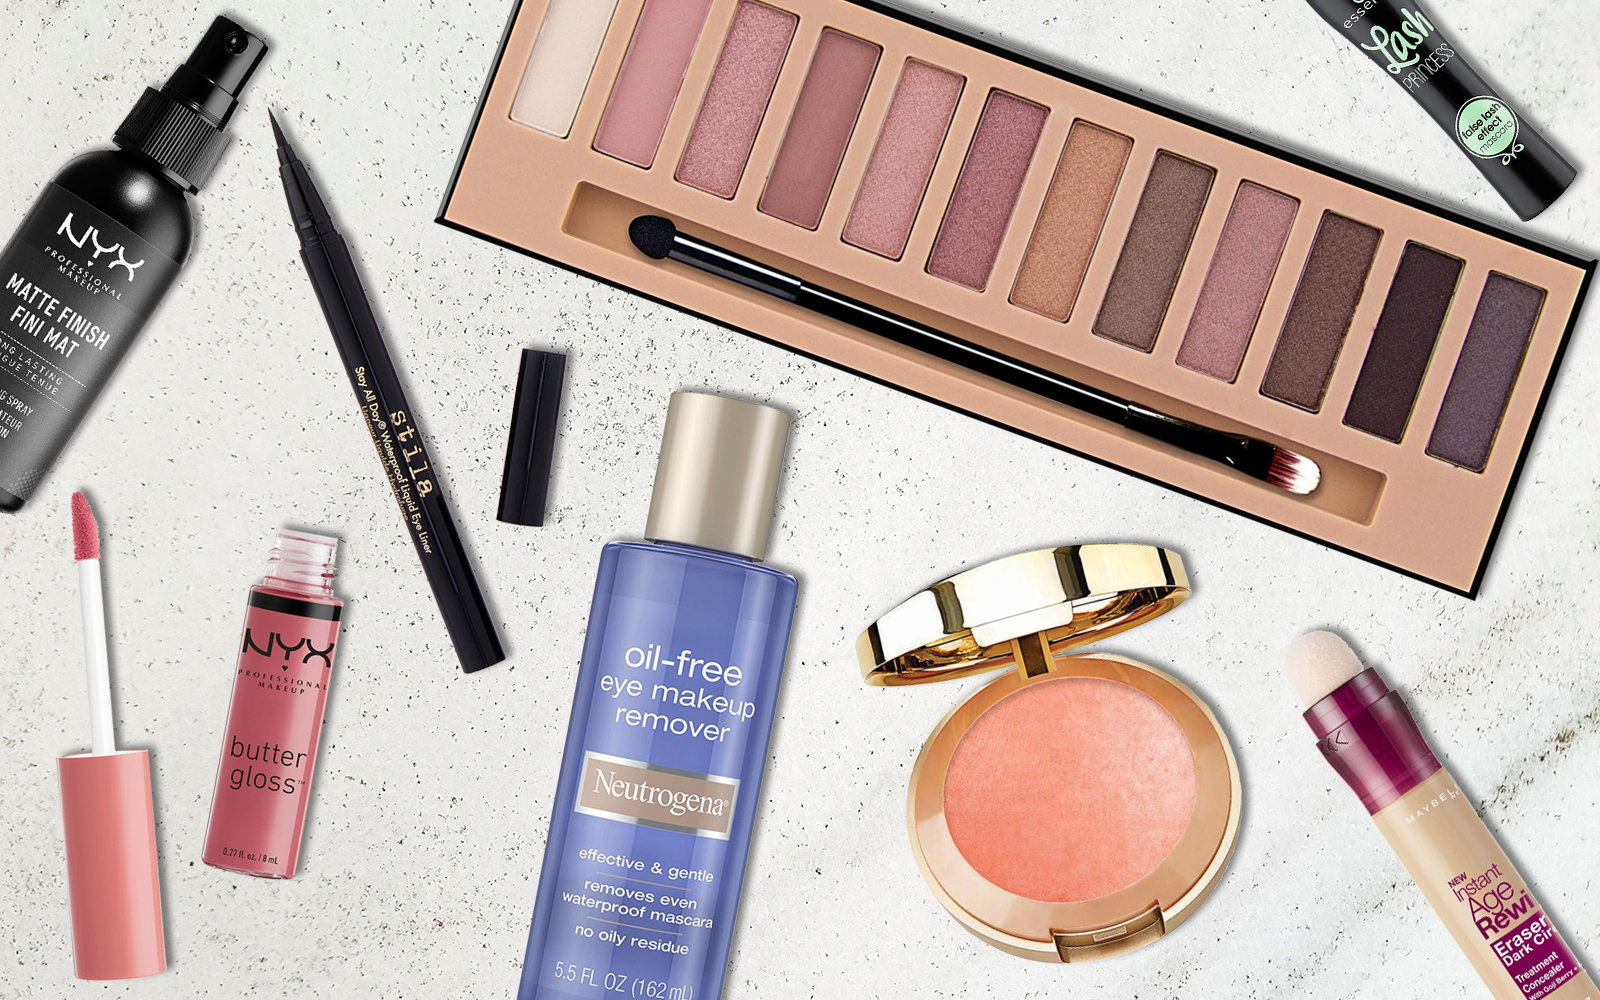 This Is the Best Makeup You Can Buy on Amazon, According to Reviews